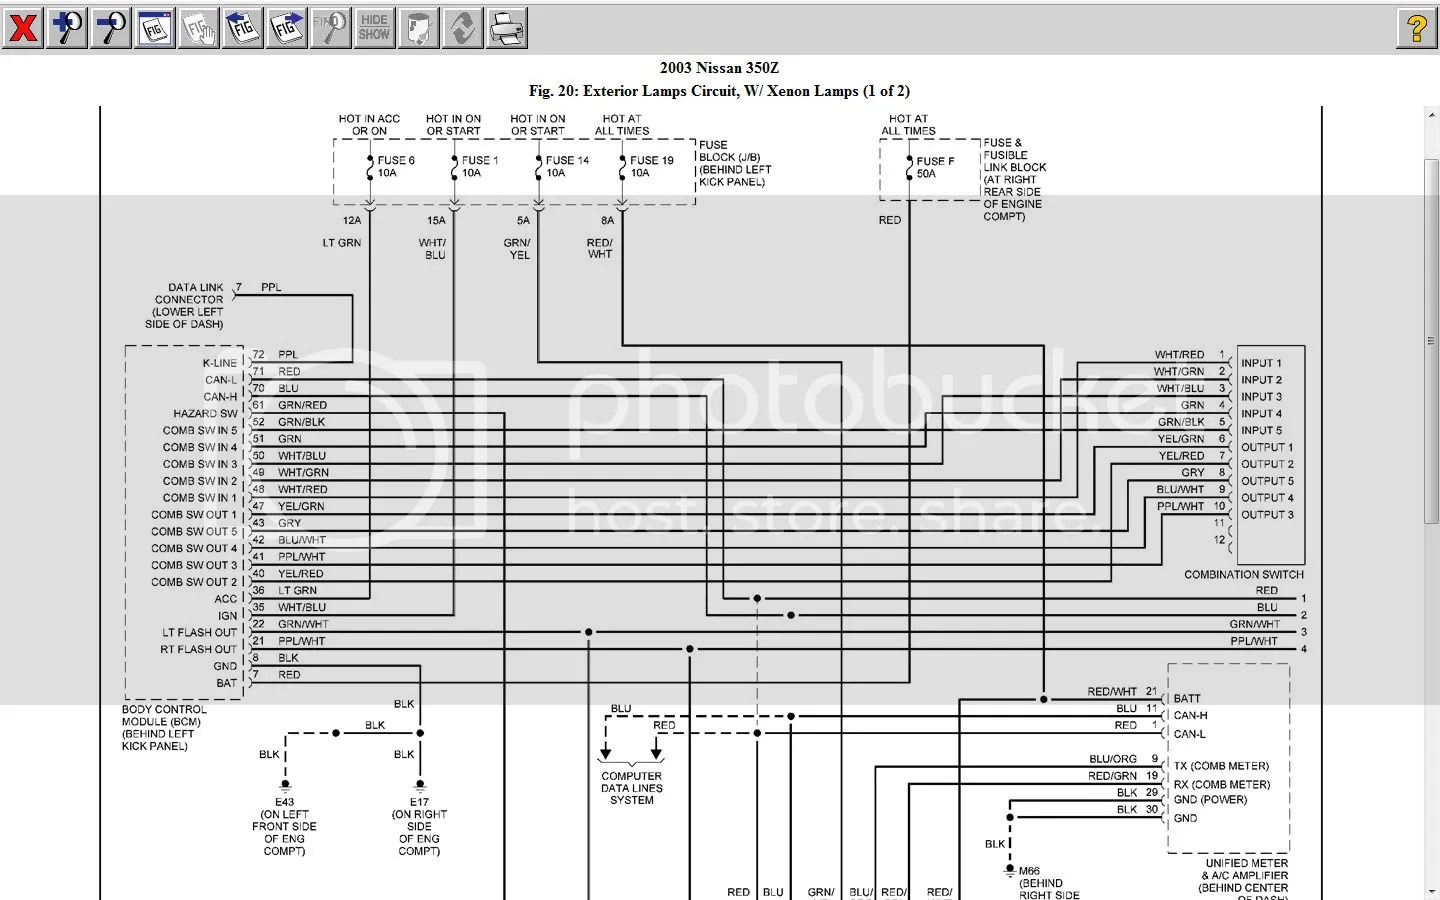 2008 nissan 350z stereo wiring diagram of car alarm system tail light problems forum 370z